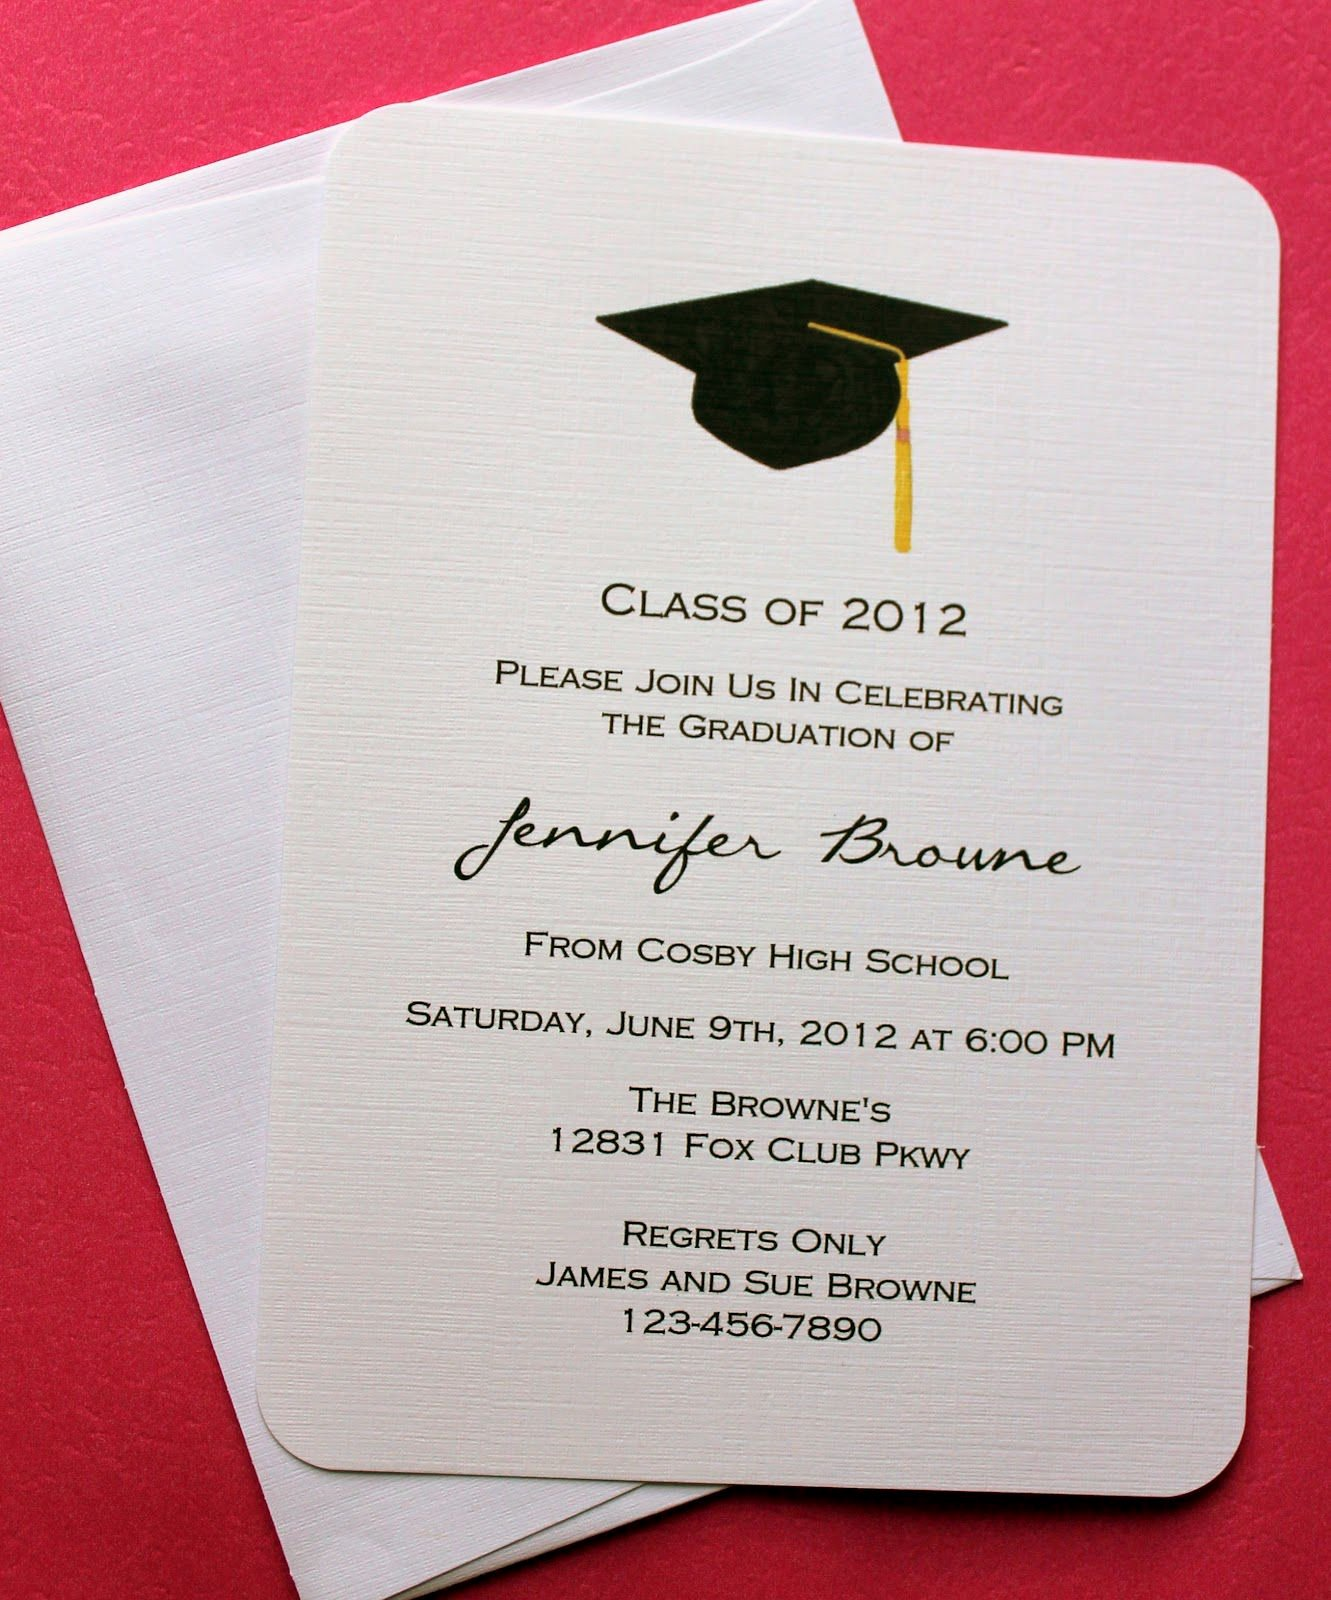 Graduation Invitation Card Template Beautiful Graduation Invitation Template Graduation Invitation